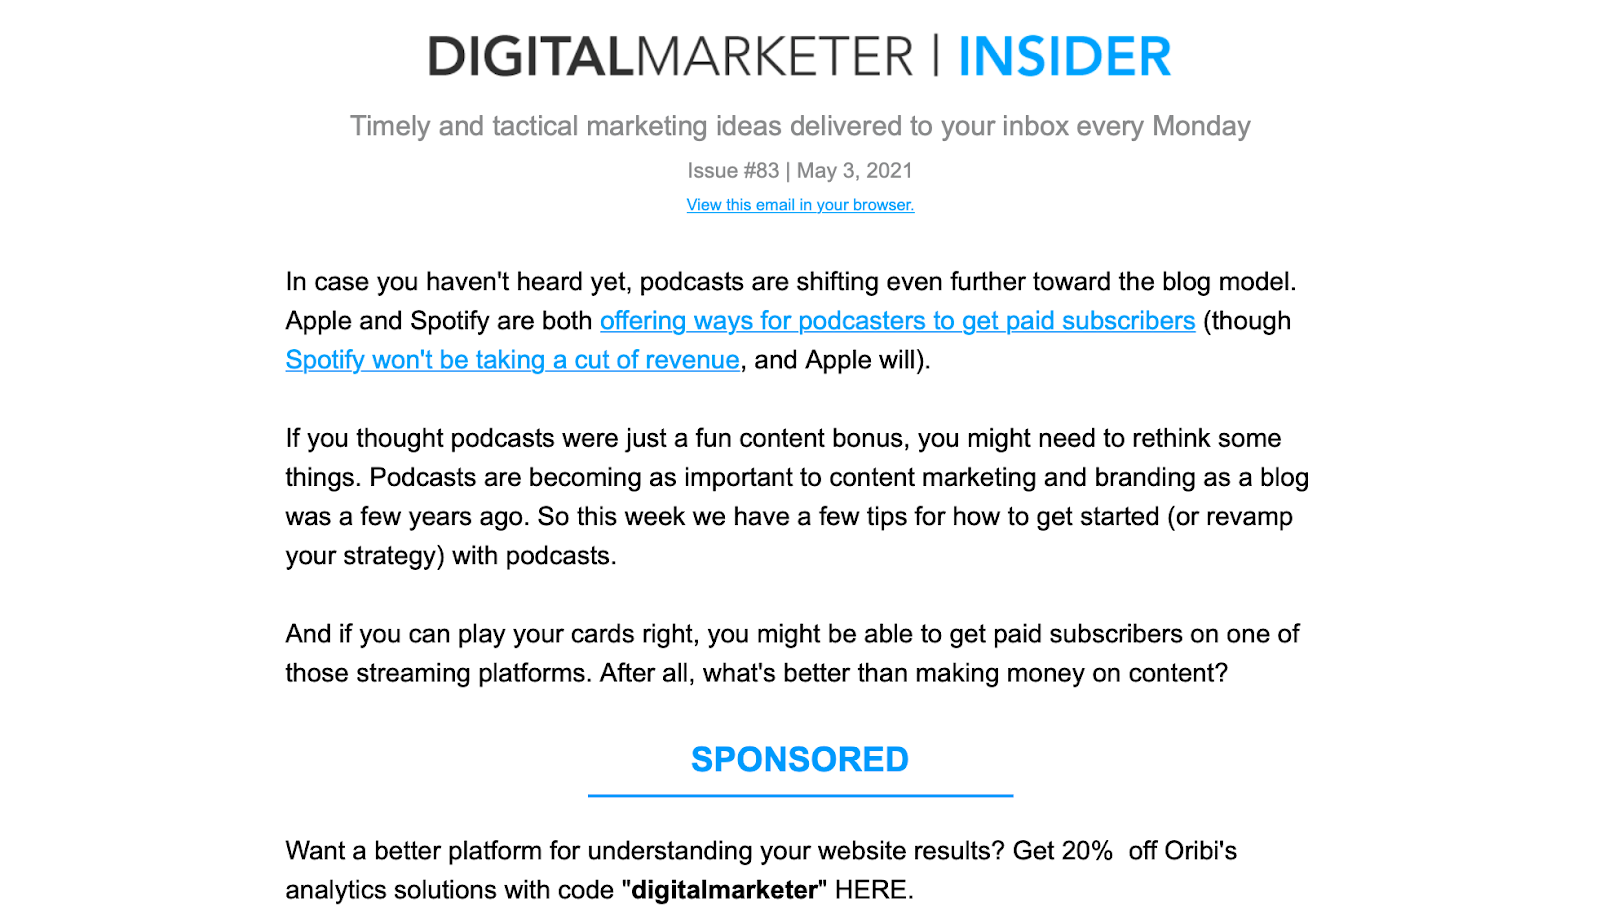 Example of a good newsletter from Digital Marketer